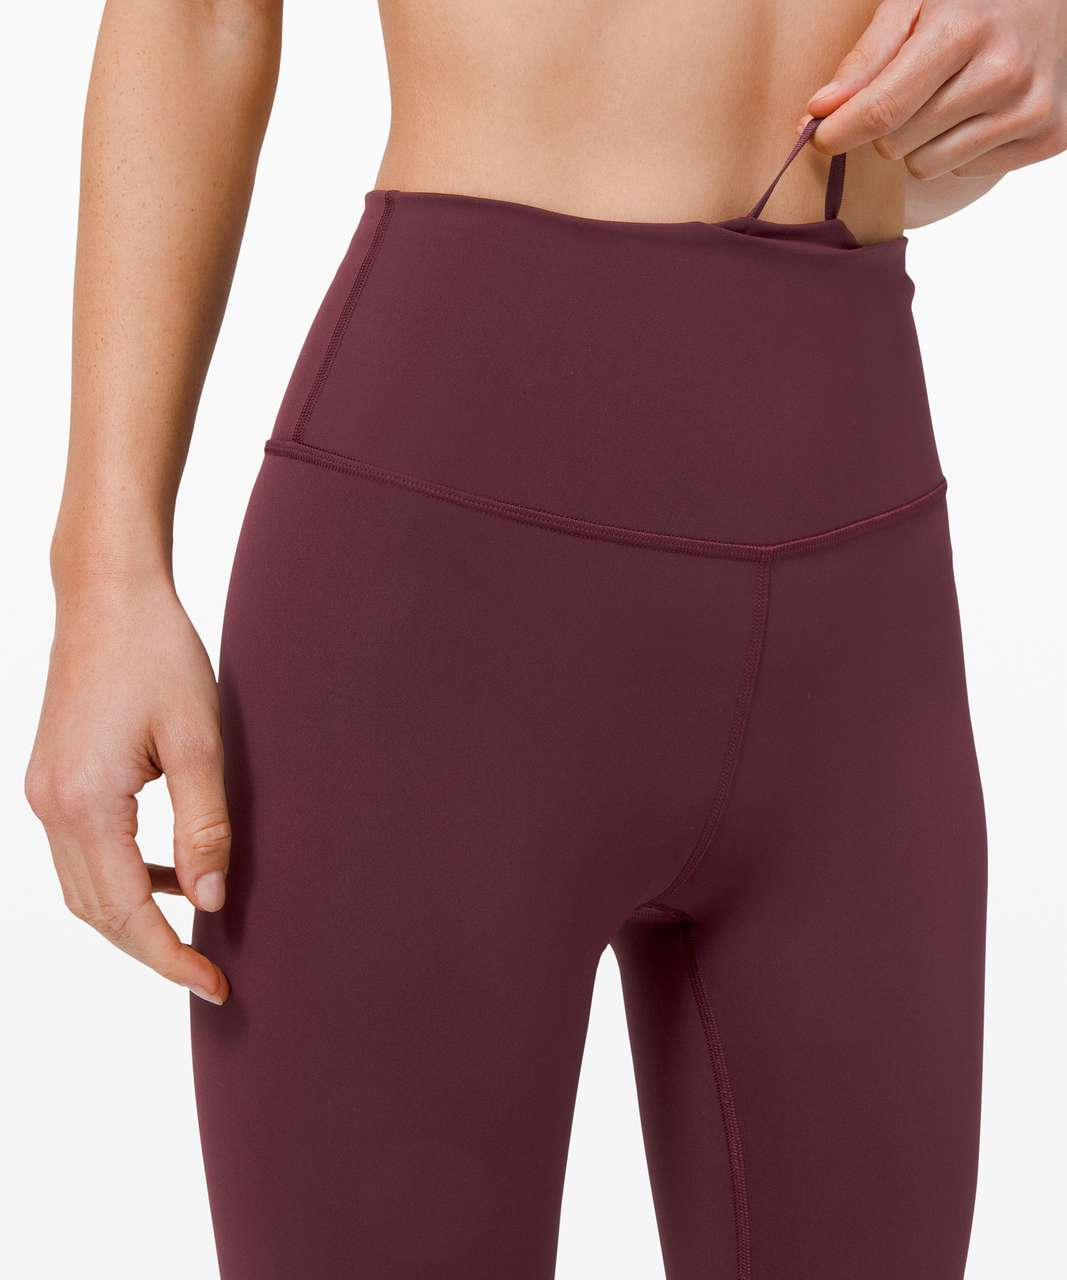 "Lululemon Wunder Train High-Rise Crop 21"" - Cassis"